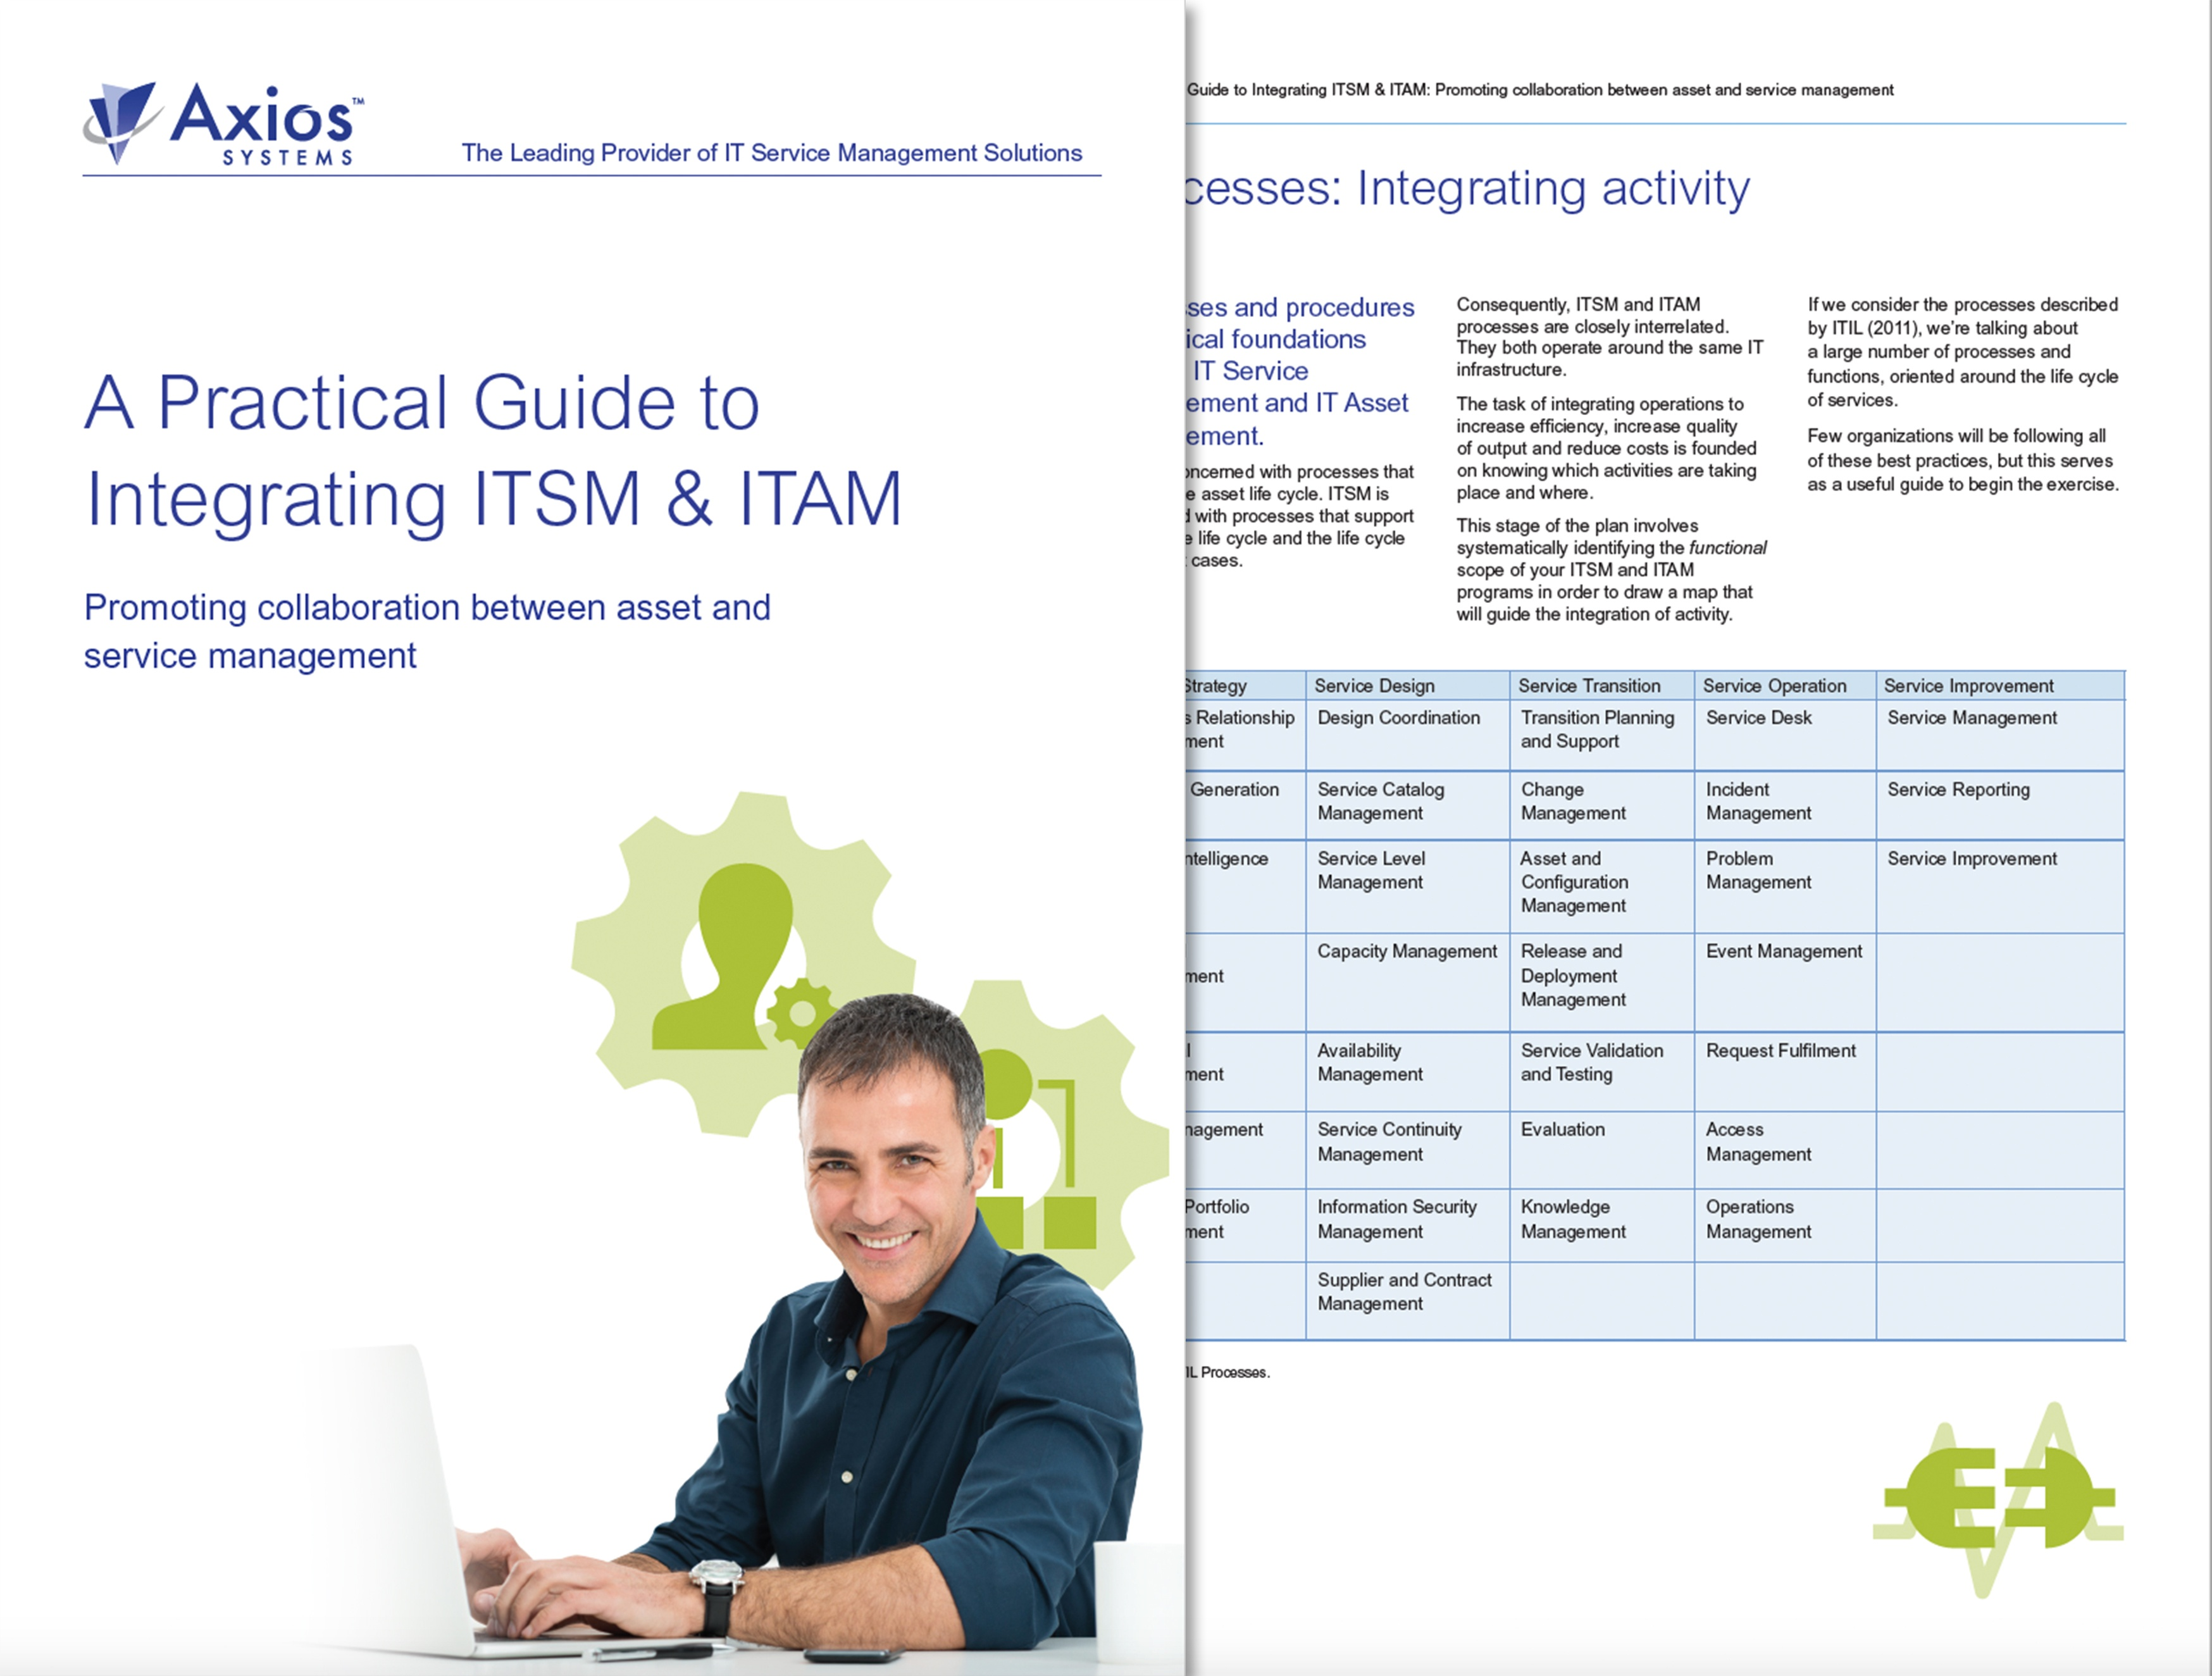 WP_pratical_guide_to_integreting_itsm_itam